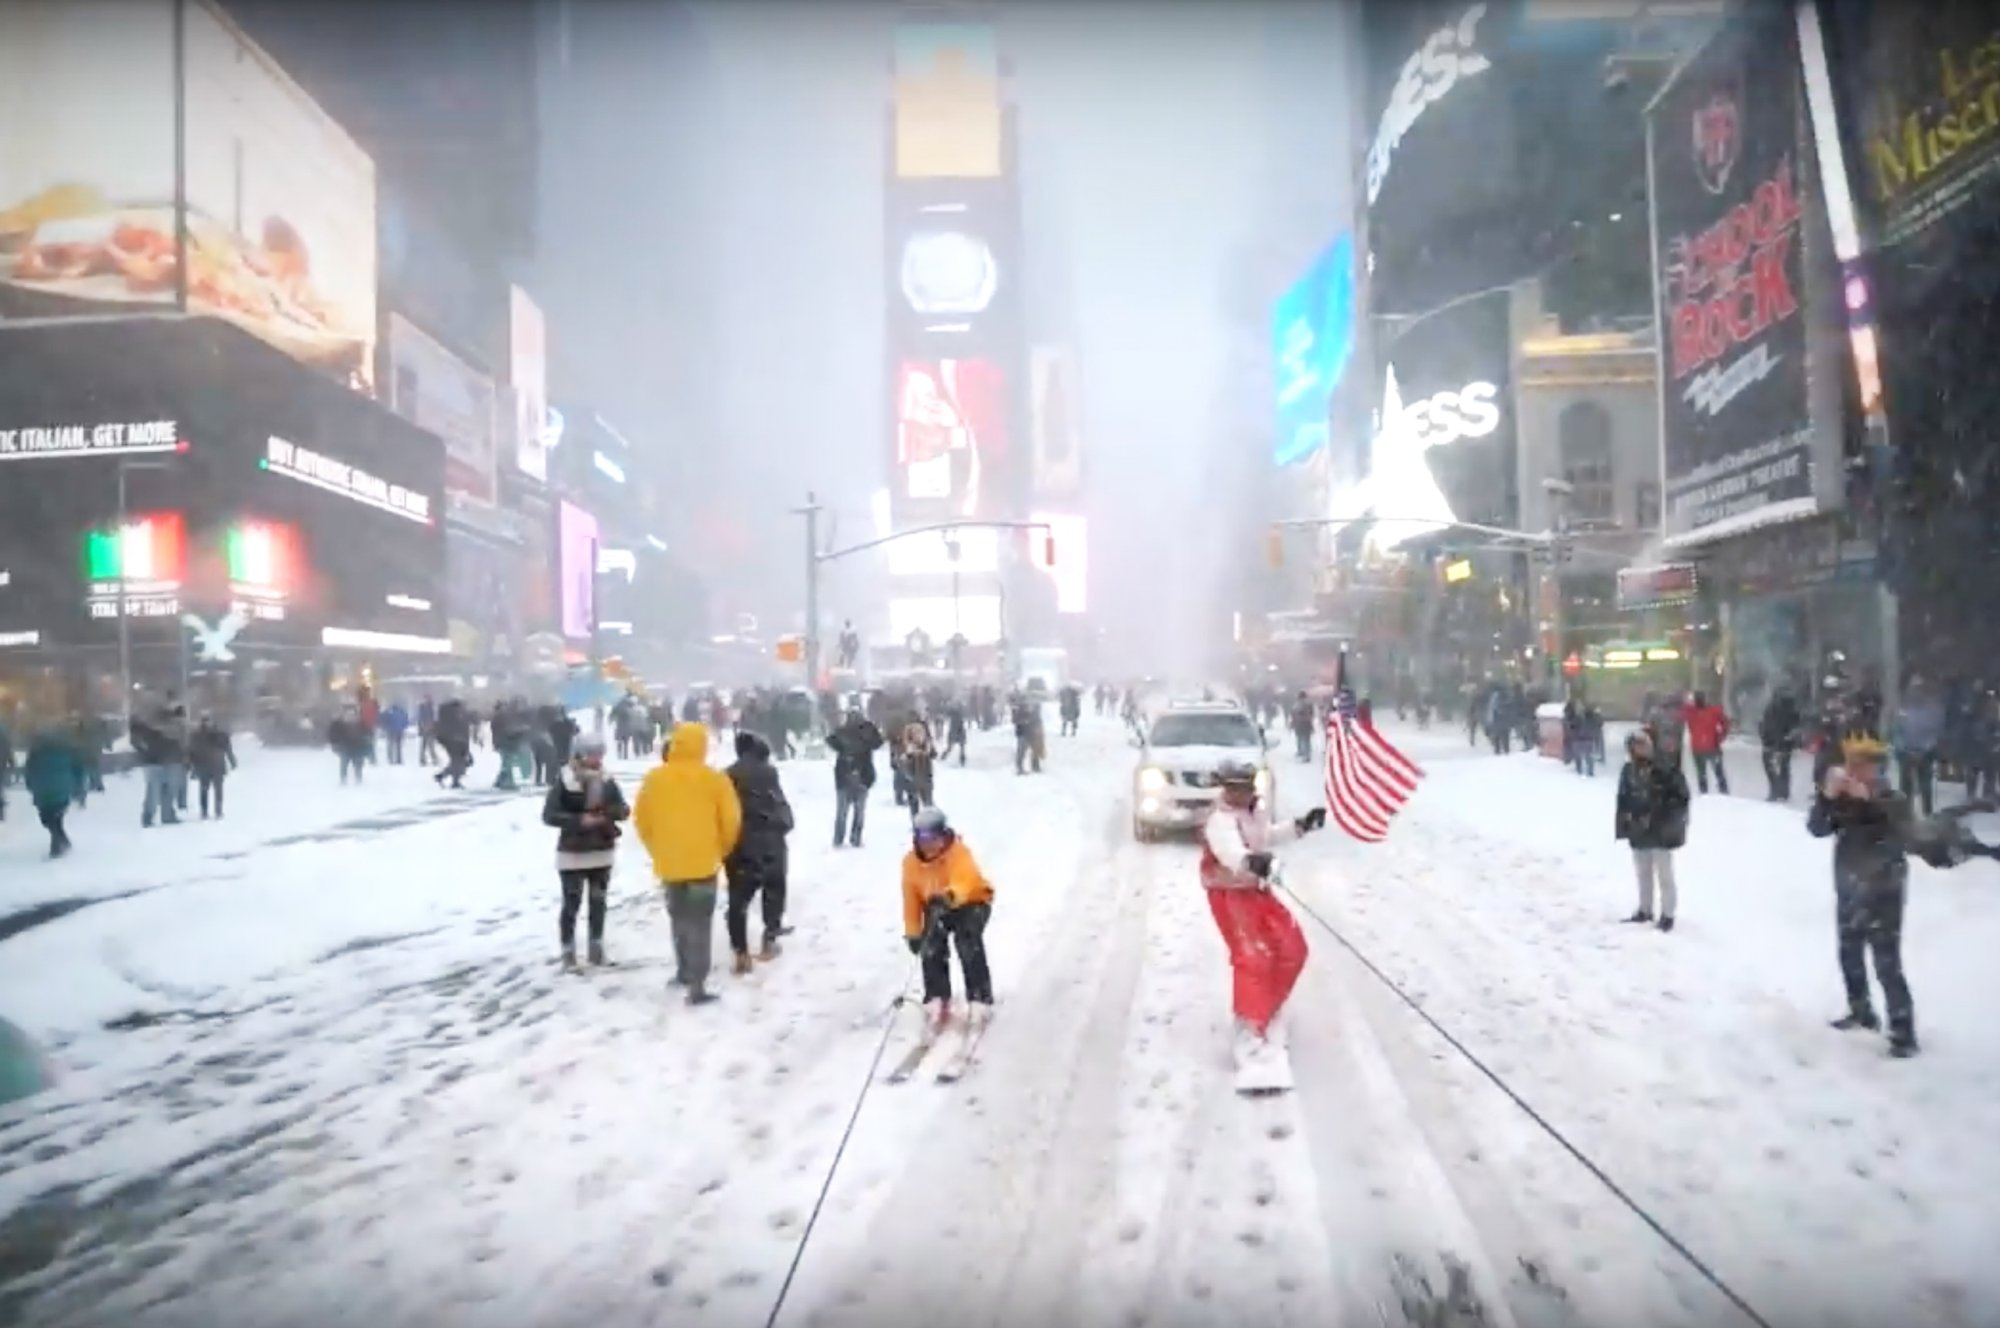 Renegade NYC Snowboarding With the NYPD – The Daily Beast